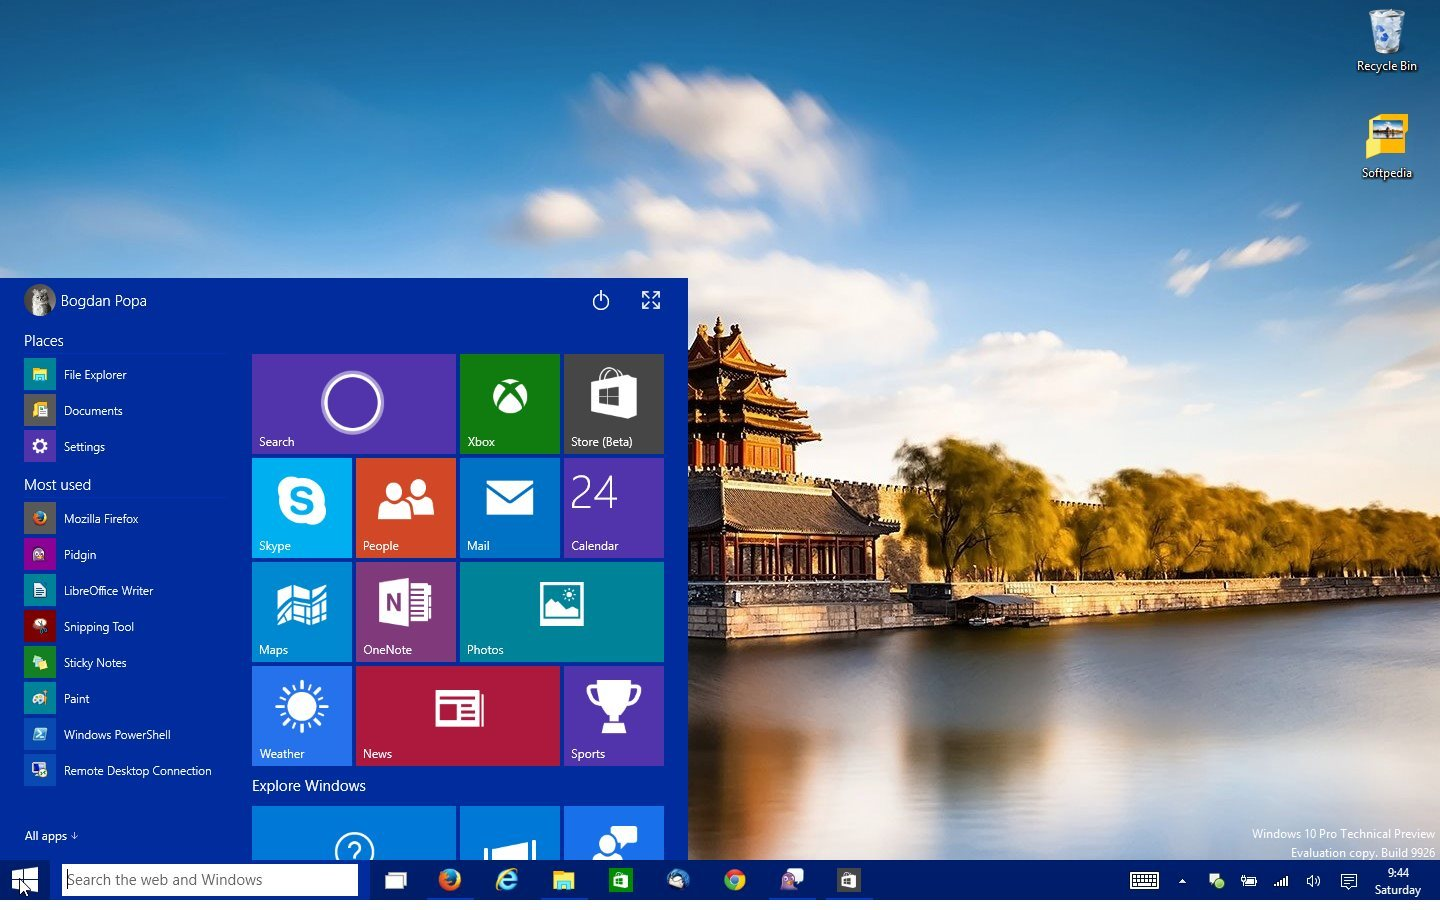 Windows 10 is currently in TP development stage 1440x910